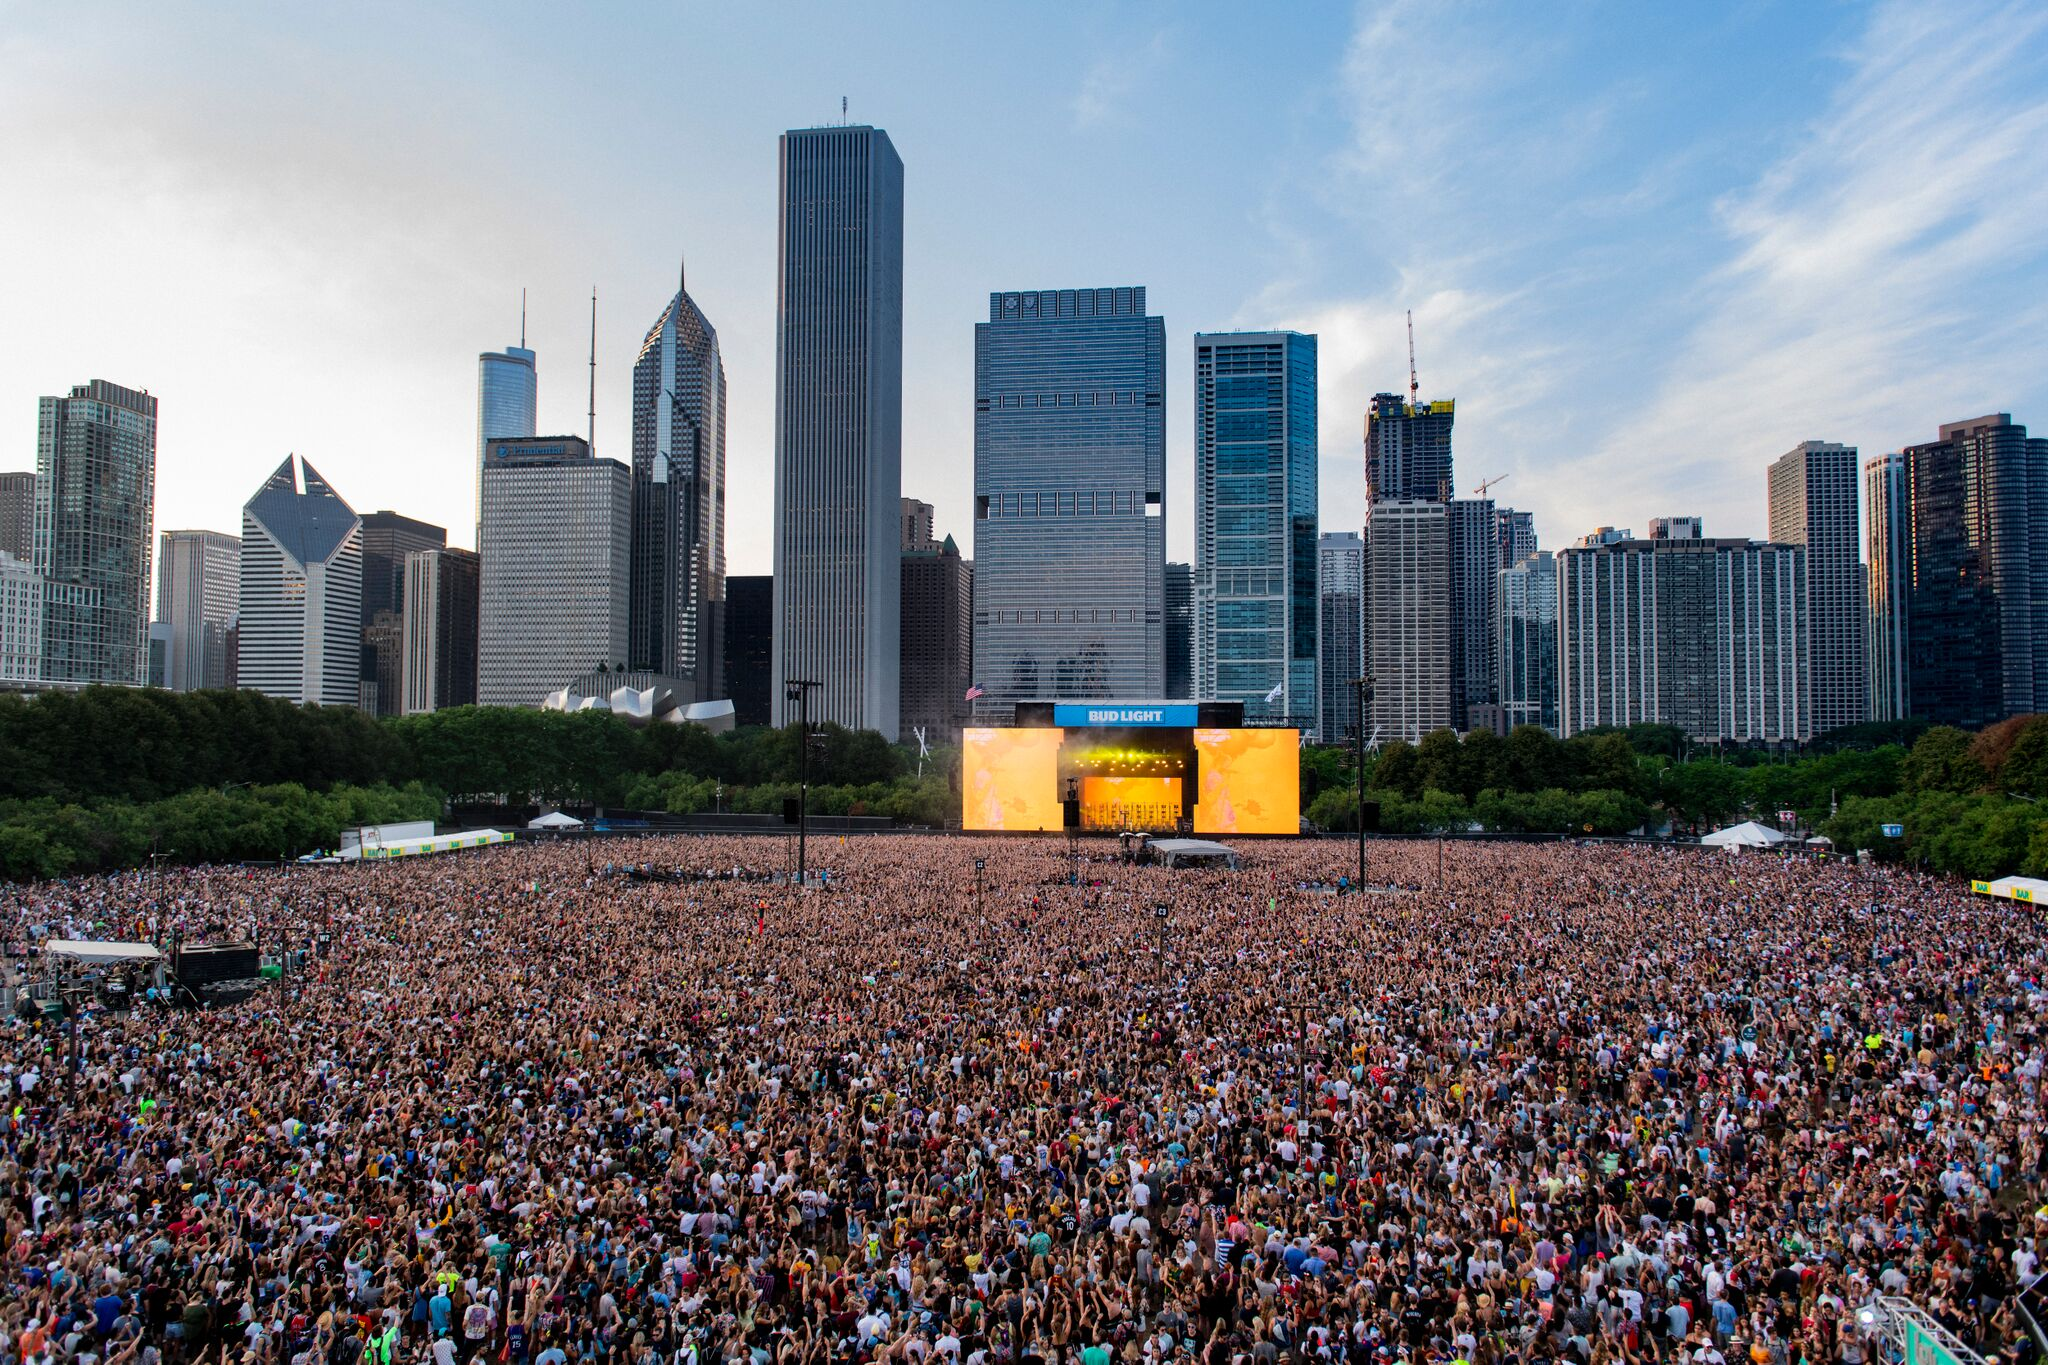 Lollapalooza Concert Stage concert large audience